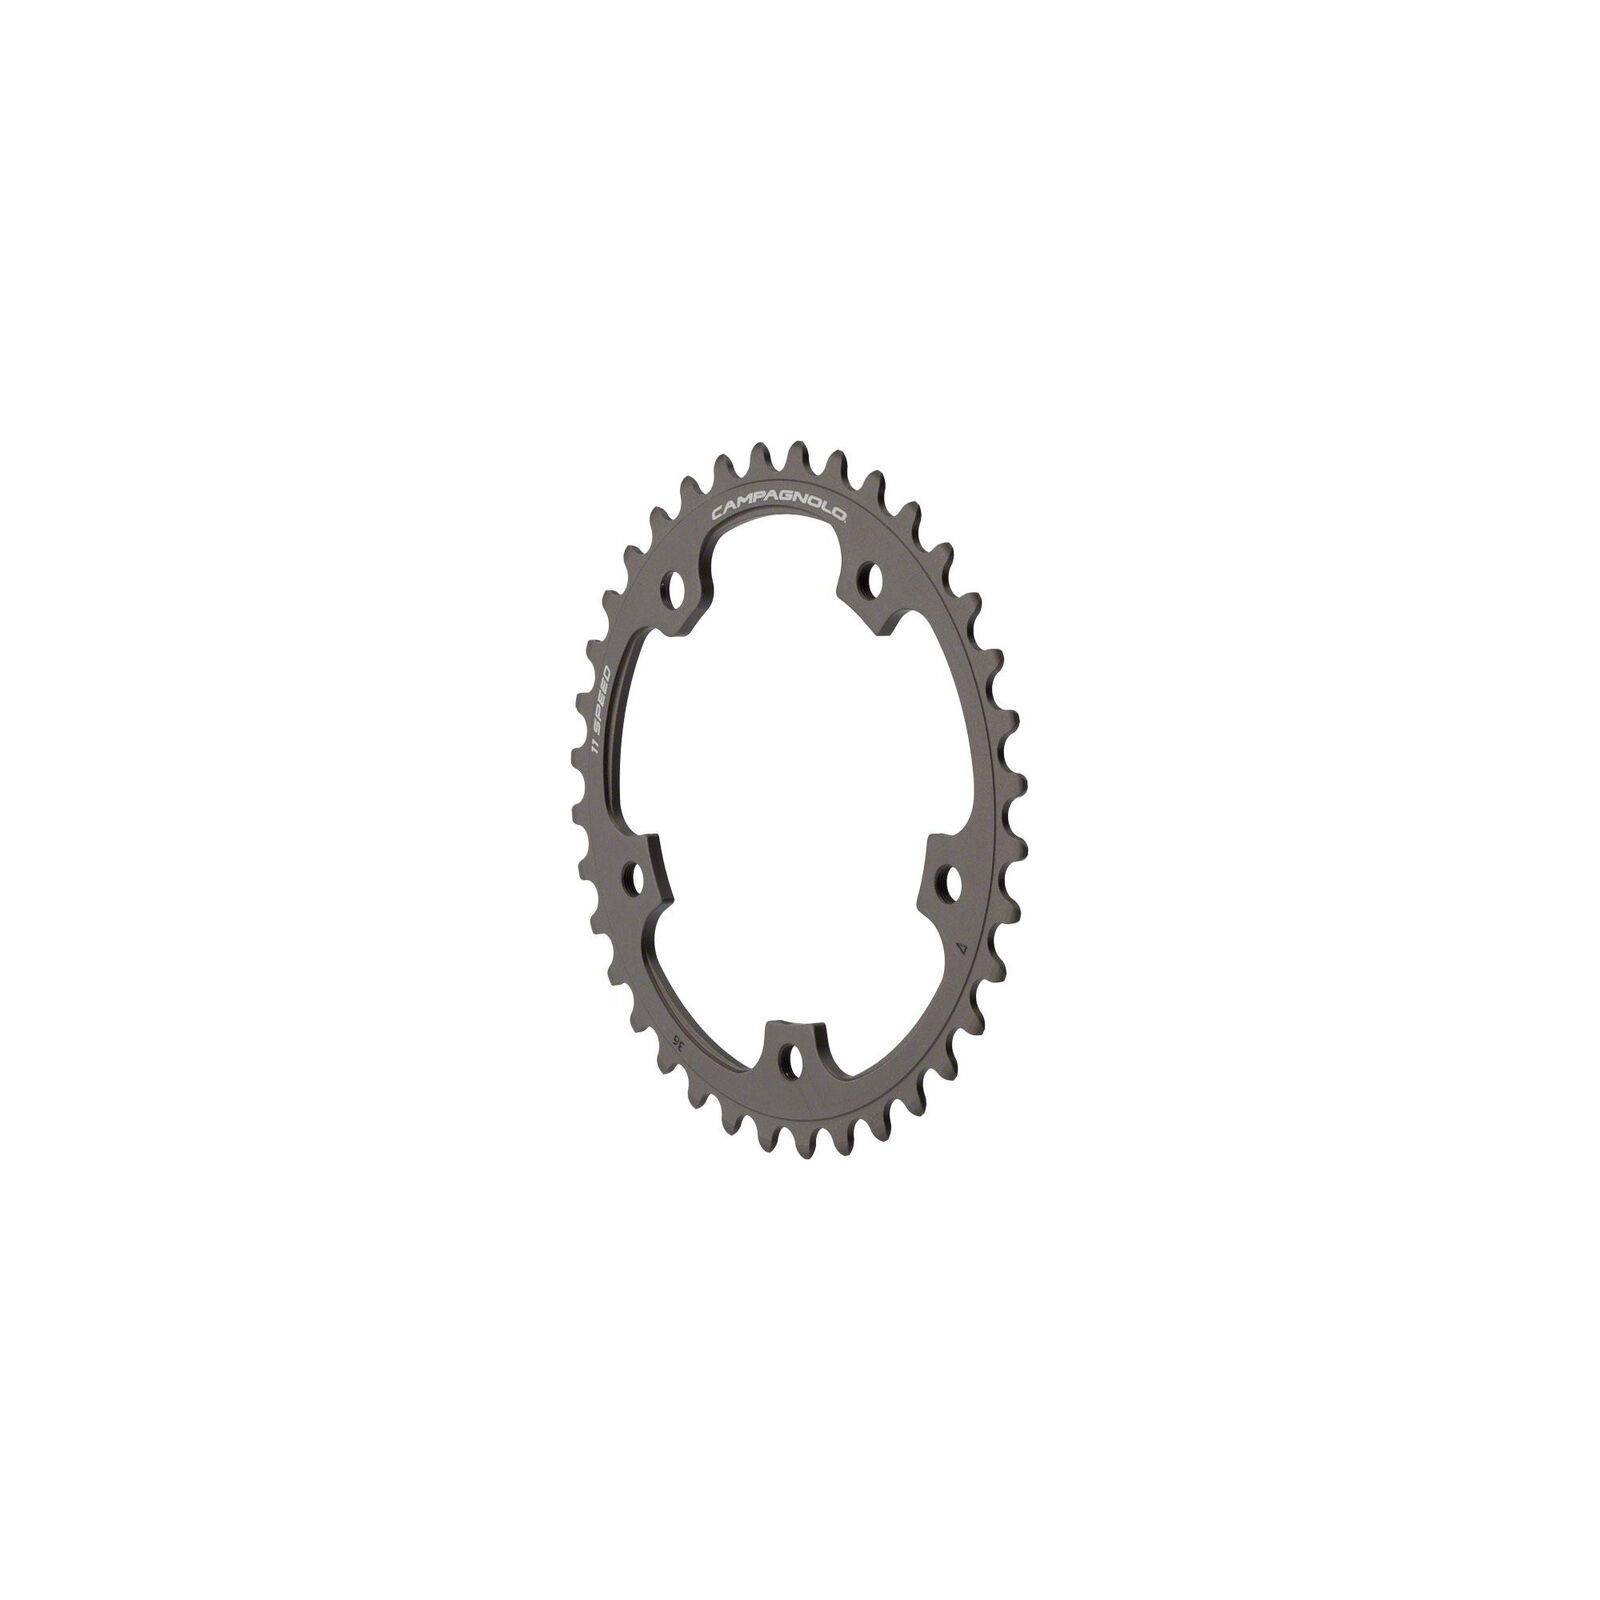 Campagnolo 2011-14  Super Record Record Chorus 11-S 36t Bike Chainring  save 60% discount and fast shipping worldwide